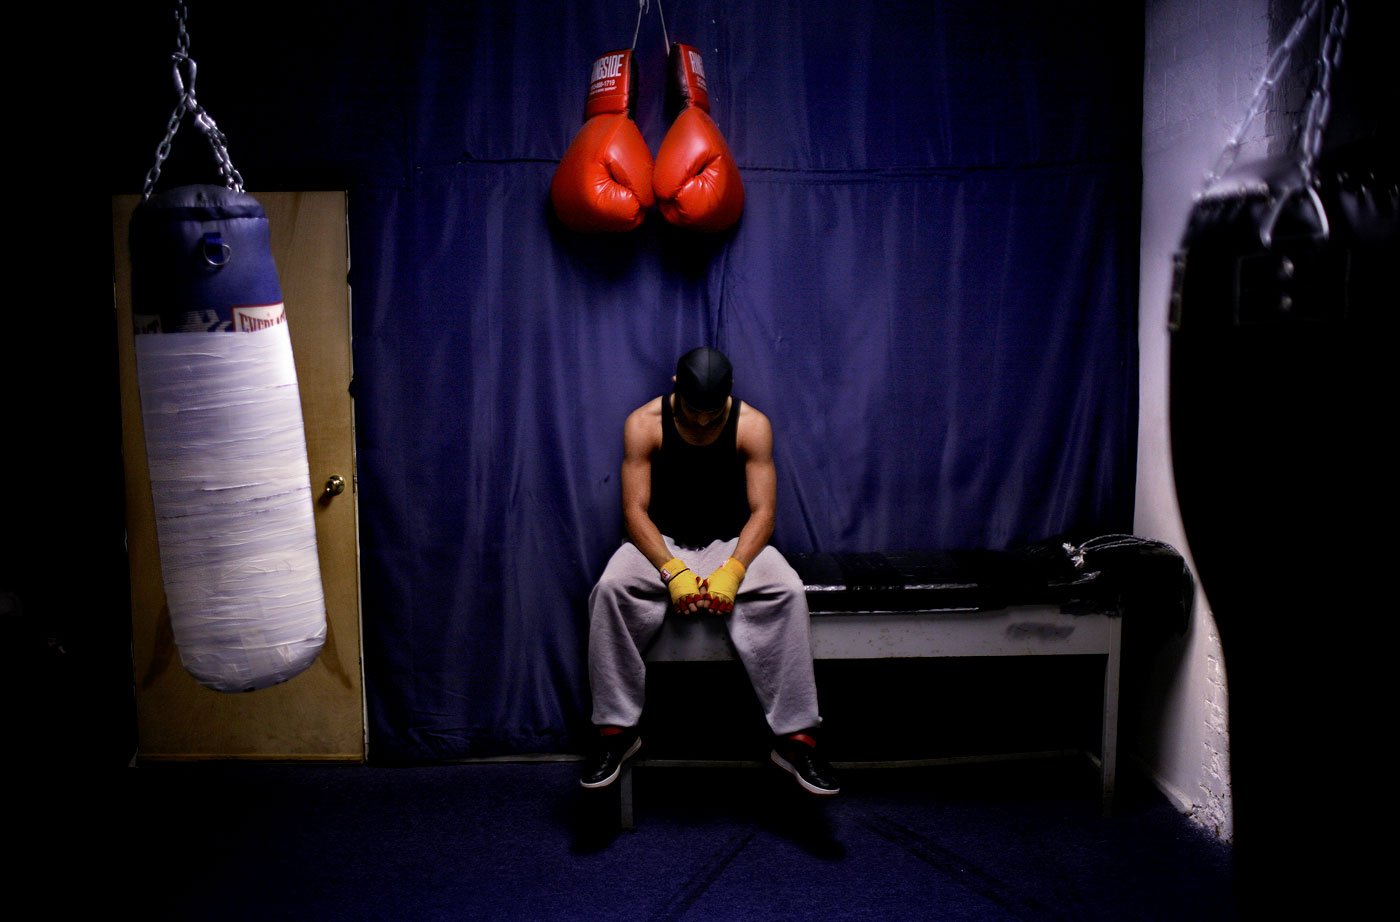 Victor Maldonado, 19, rests while working out at the San Juan Center Sports in Hartford.  Maldonado is from Hartford and works out in the afternoon, when the center has a program for area youth. The center provides an alternative for youth other than hitting the streets in the afternoon.